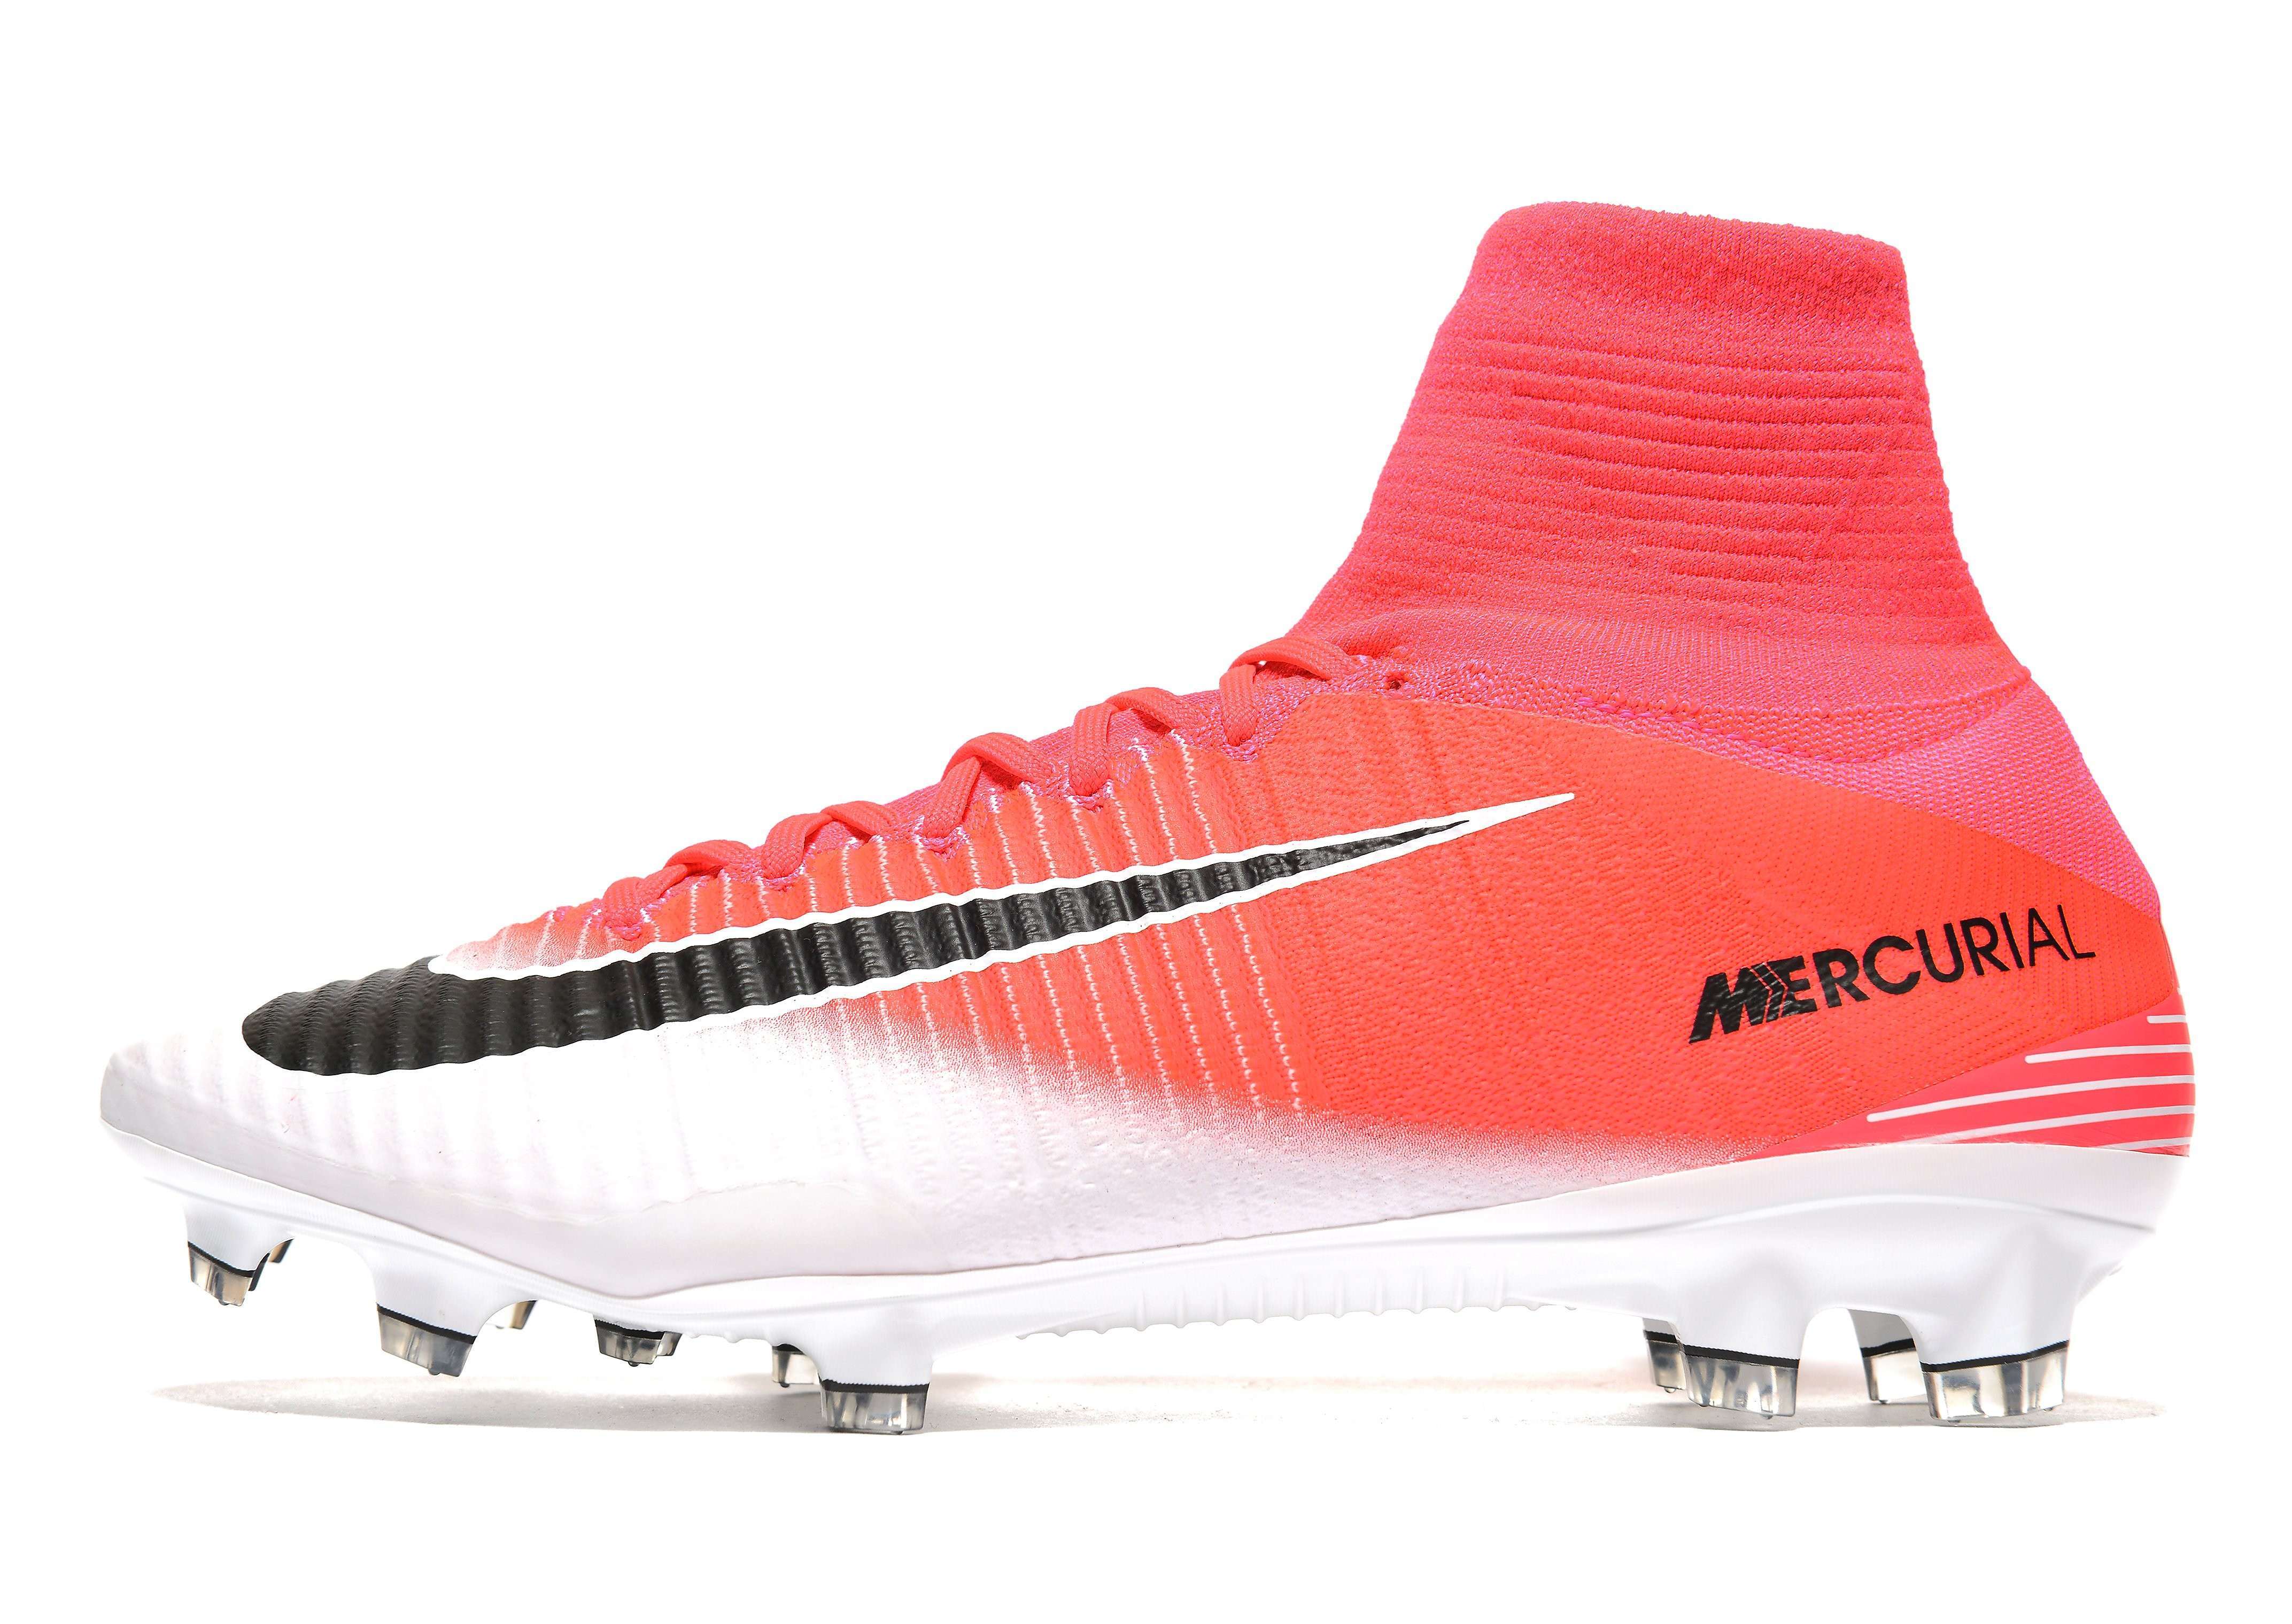 Nike Motion Blur Mercurial Superfly FG